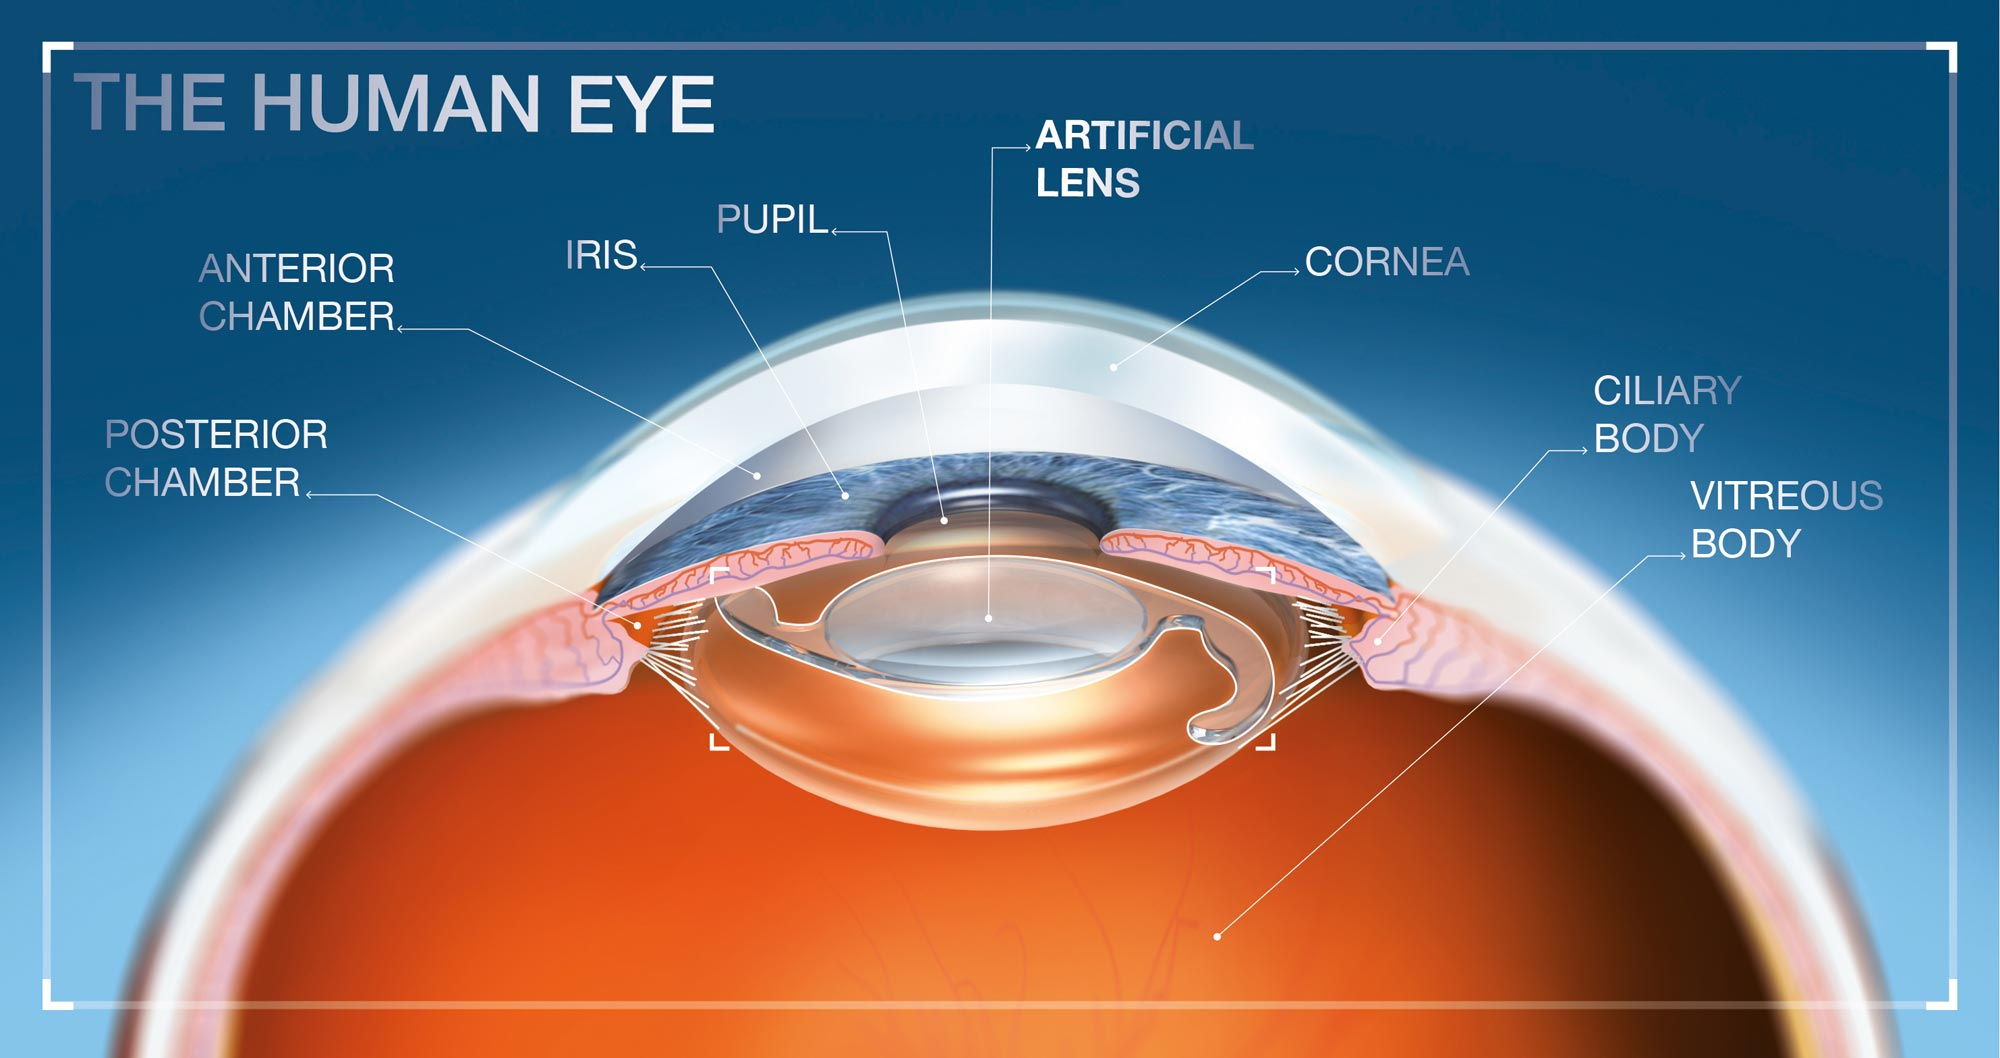 eye lens implants